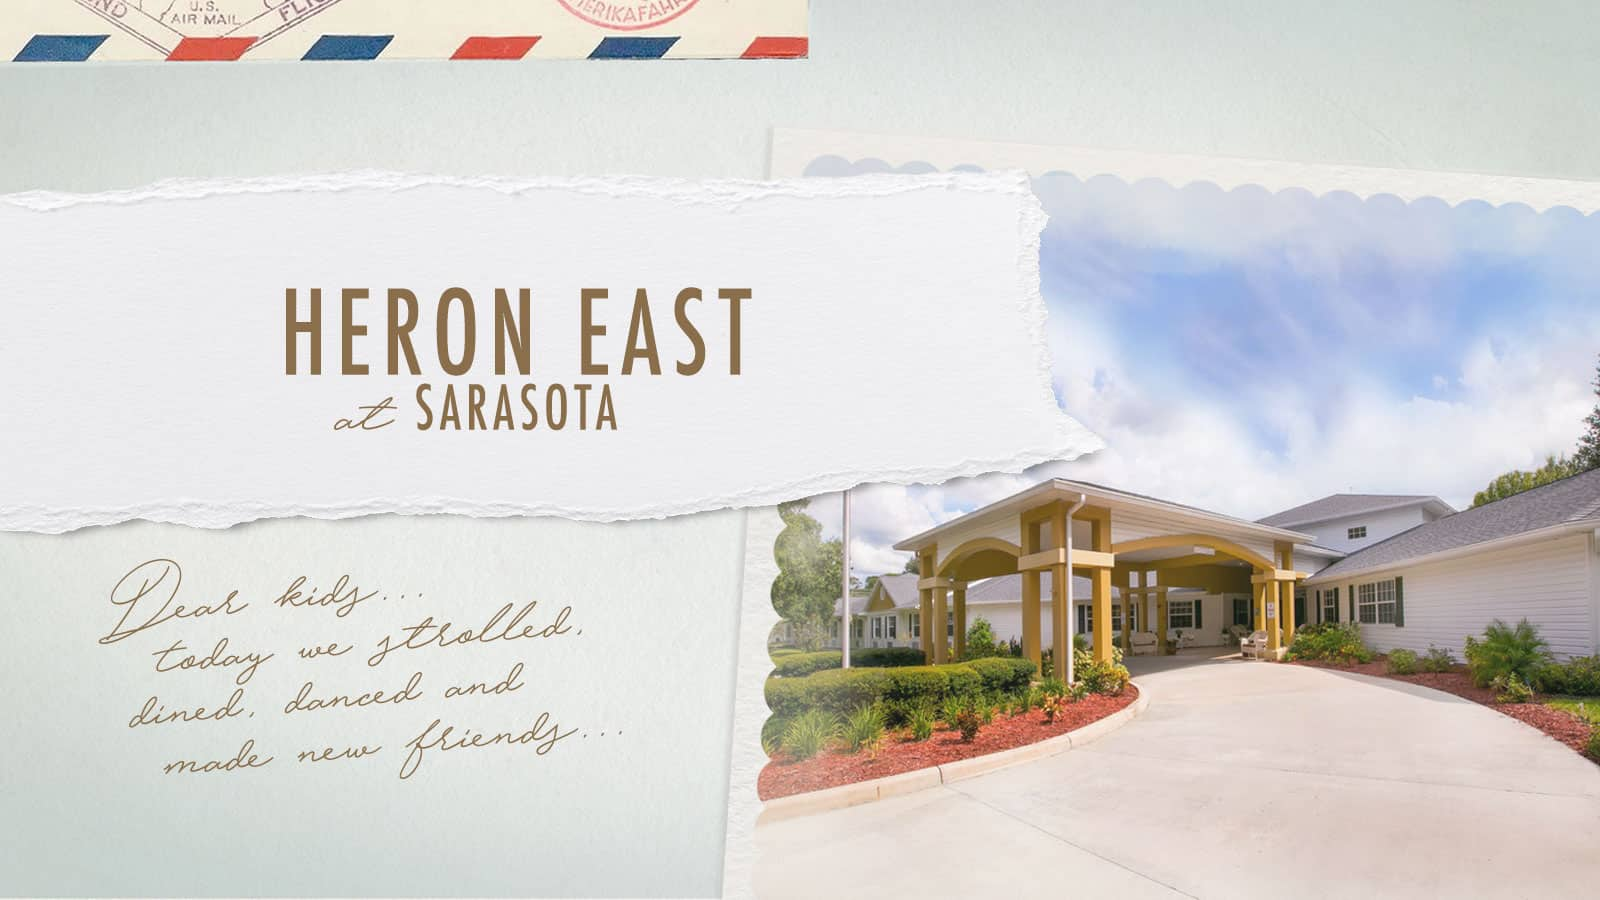 Heron East Assisted Living Community in Sarasota Florida